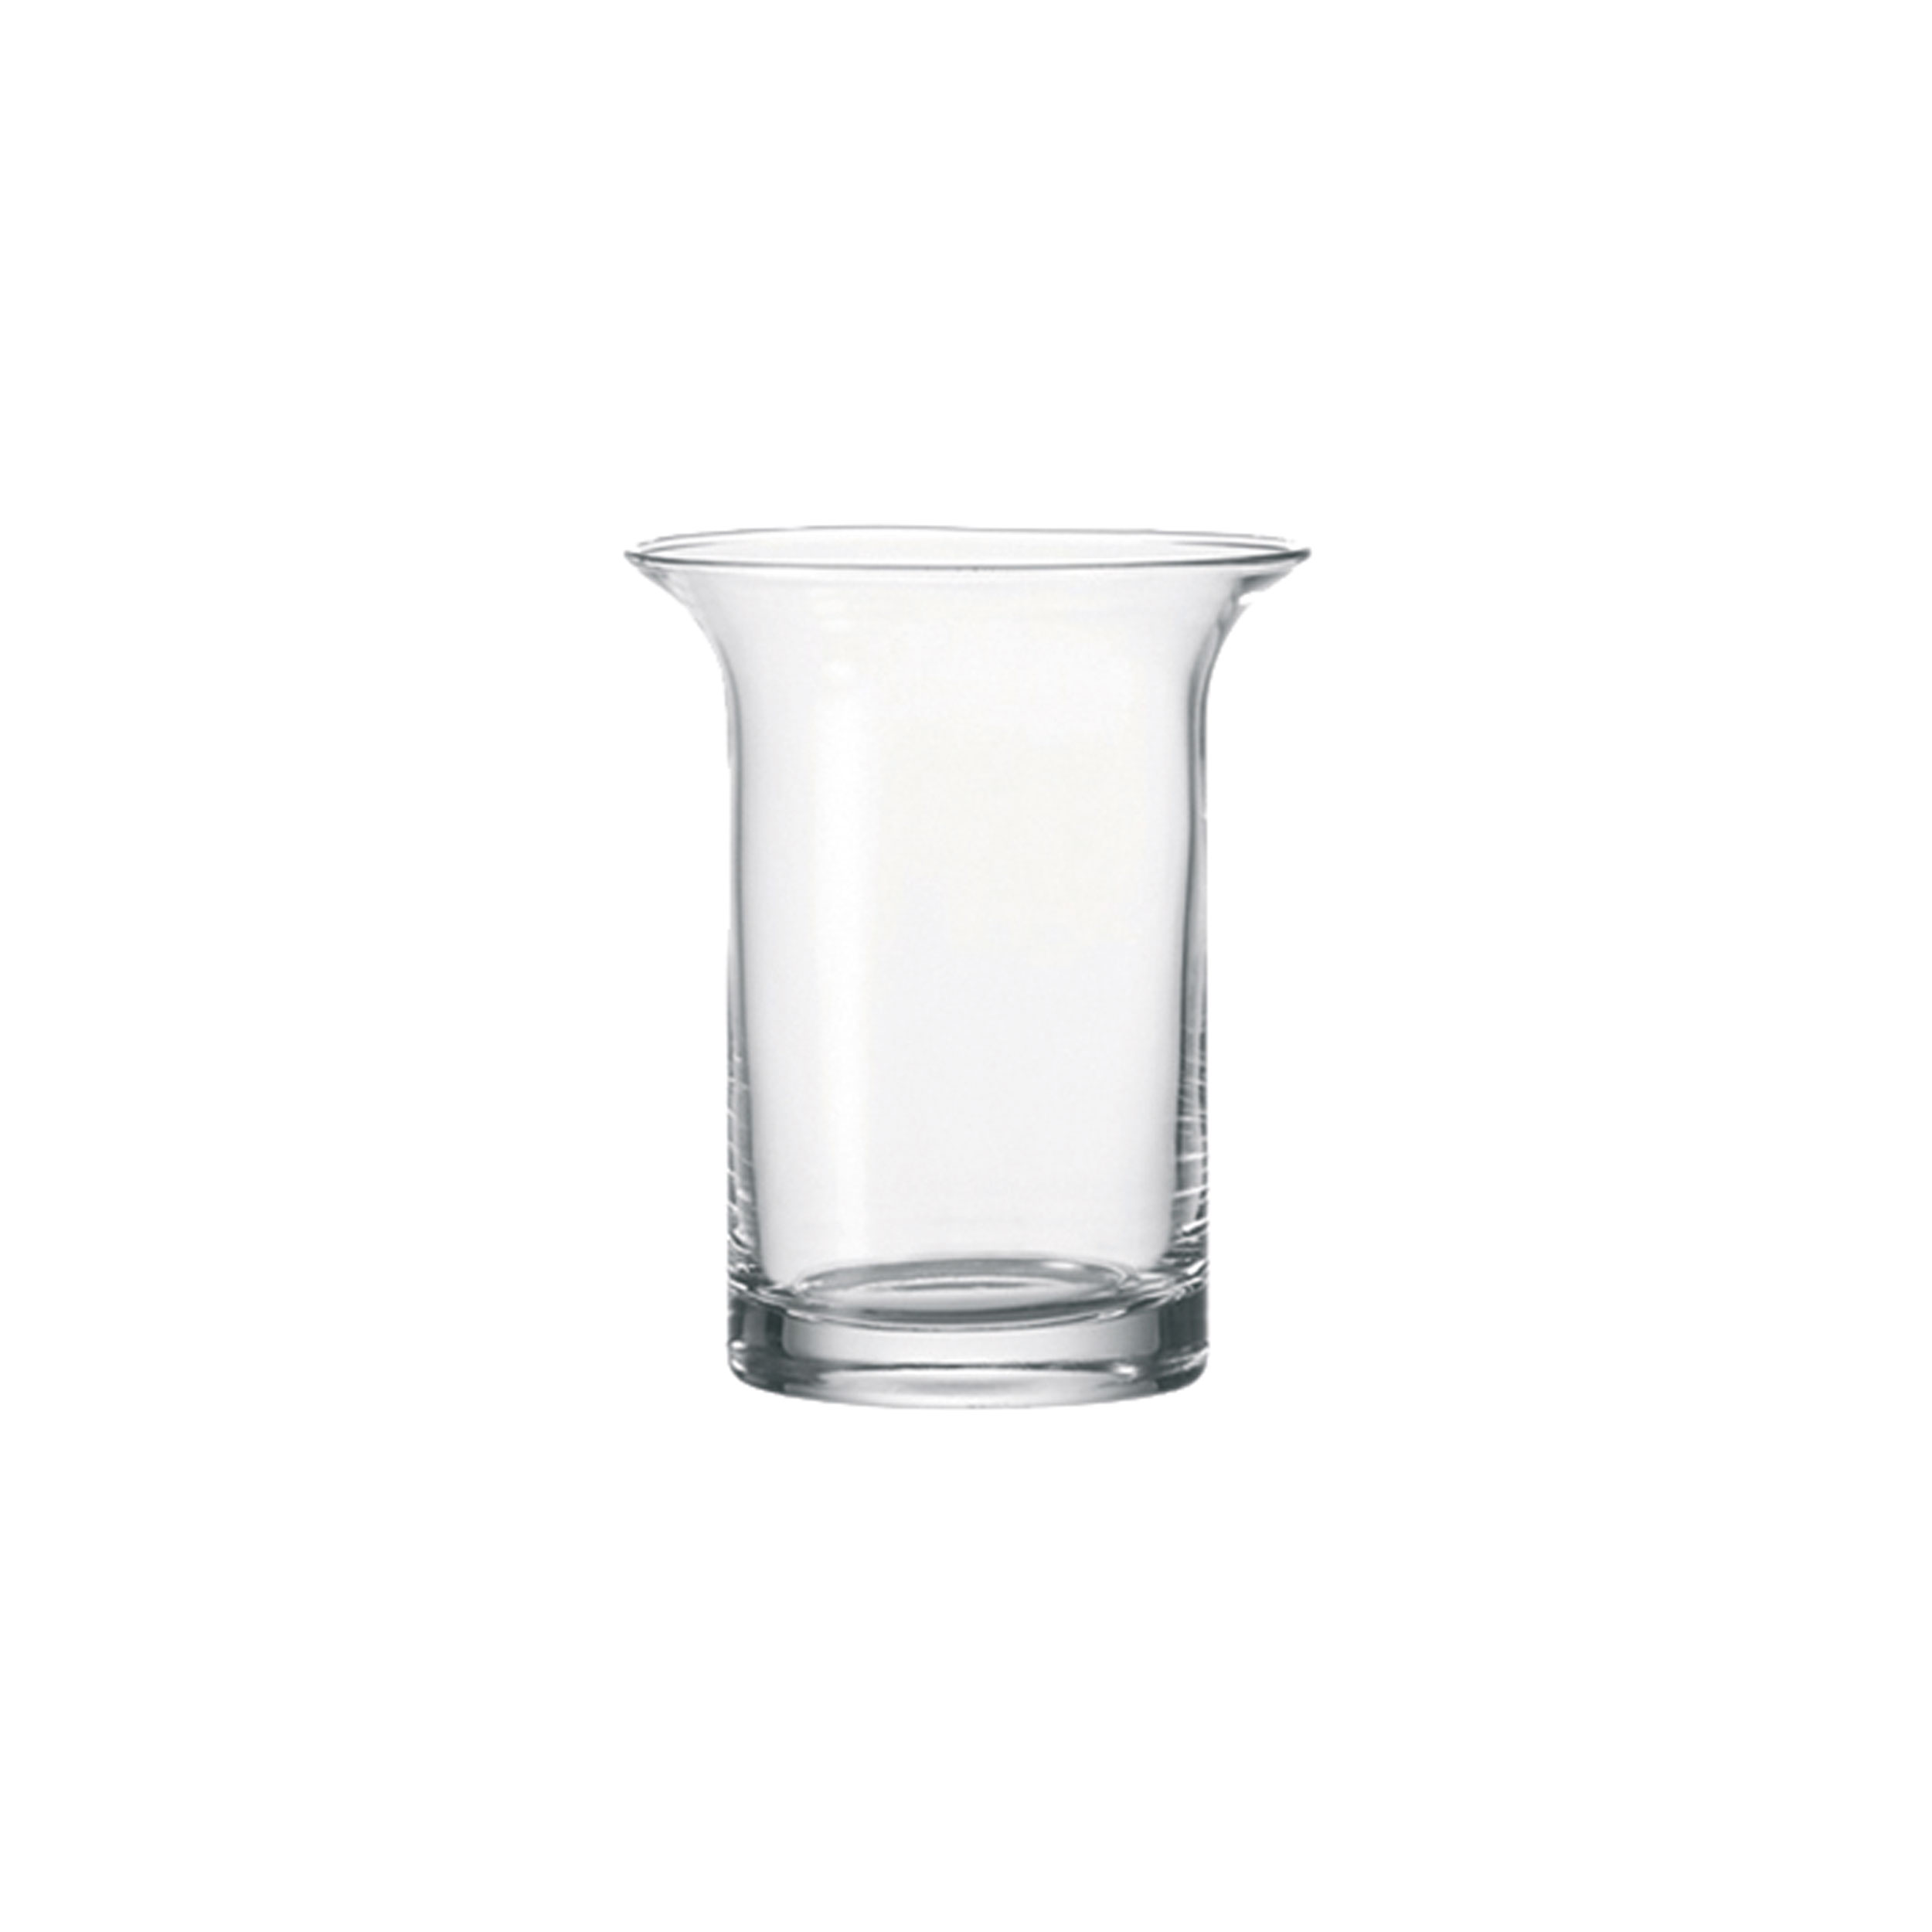 Leonardo Vase Leonardo Breeze Vase Flower Vase Handmade Clear Glass Thick Glass Base Glass H 16 Cm 30662 At About Tea De Shop